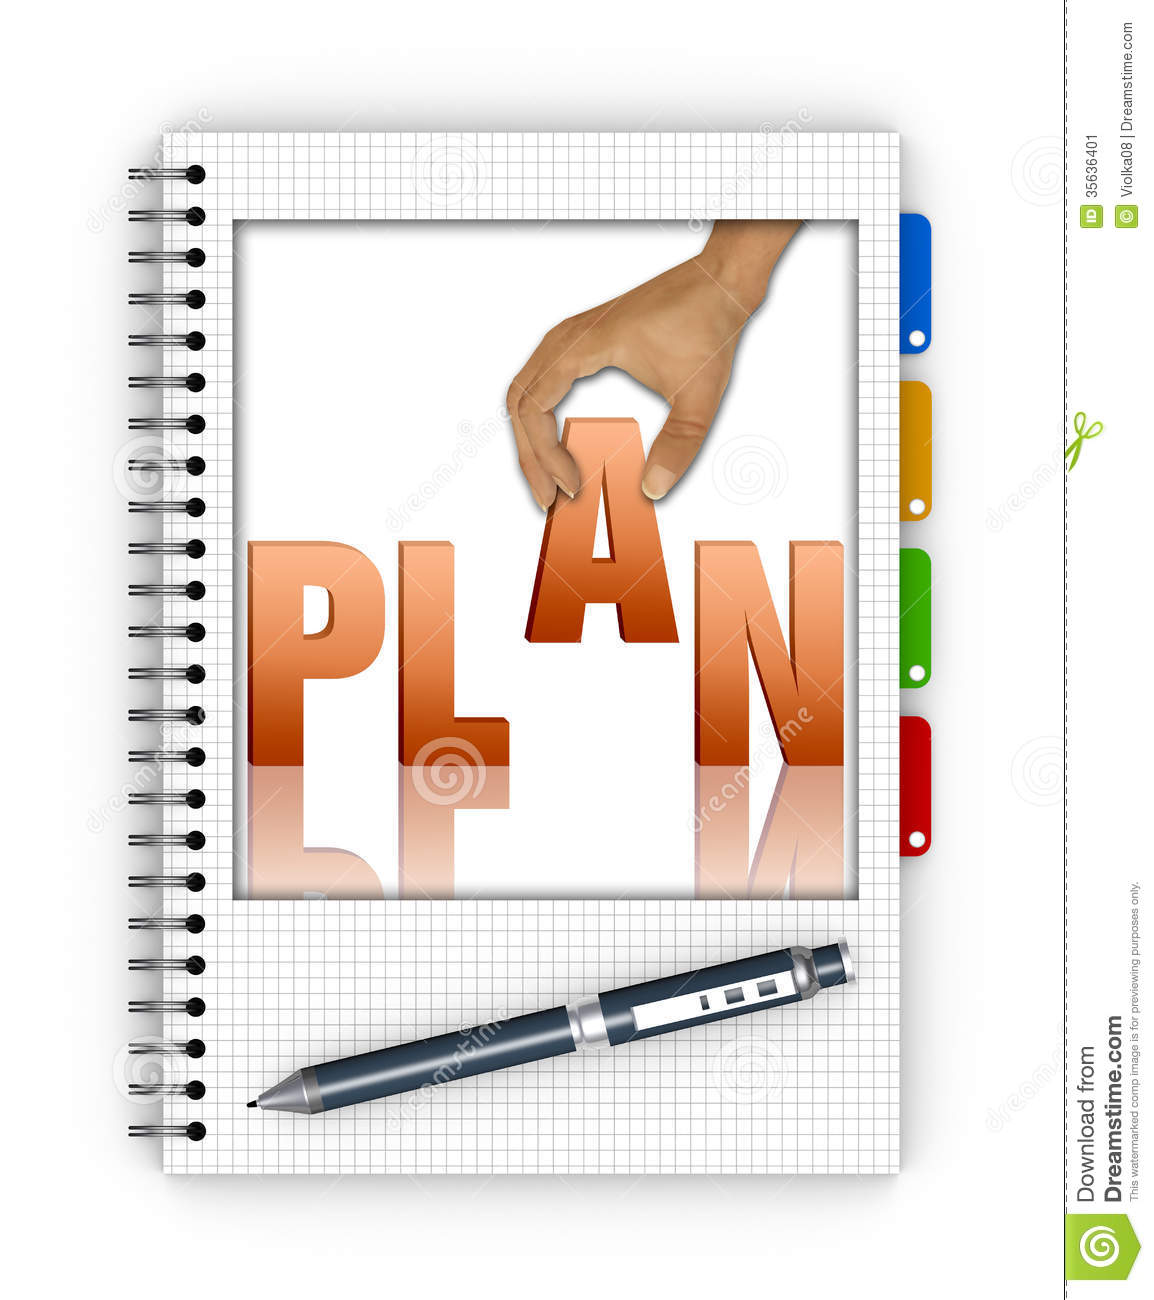 the complex nature of human resource planning commerce essay Like any other signifier of planning, human resource planning ( hrp ) is a  as  to guarantee that an appropriate scope of accomplishments is available for the  full  some complicated equipments and treating of patients which requires  proper  organizational structure and human resource practices commerce  essay.